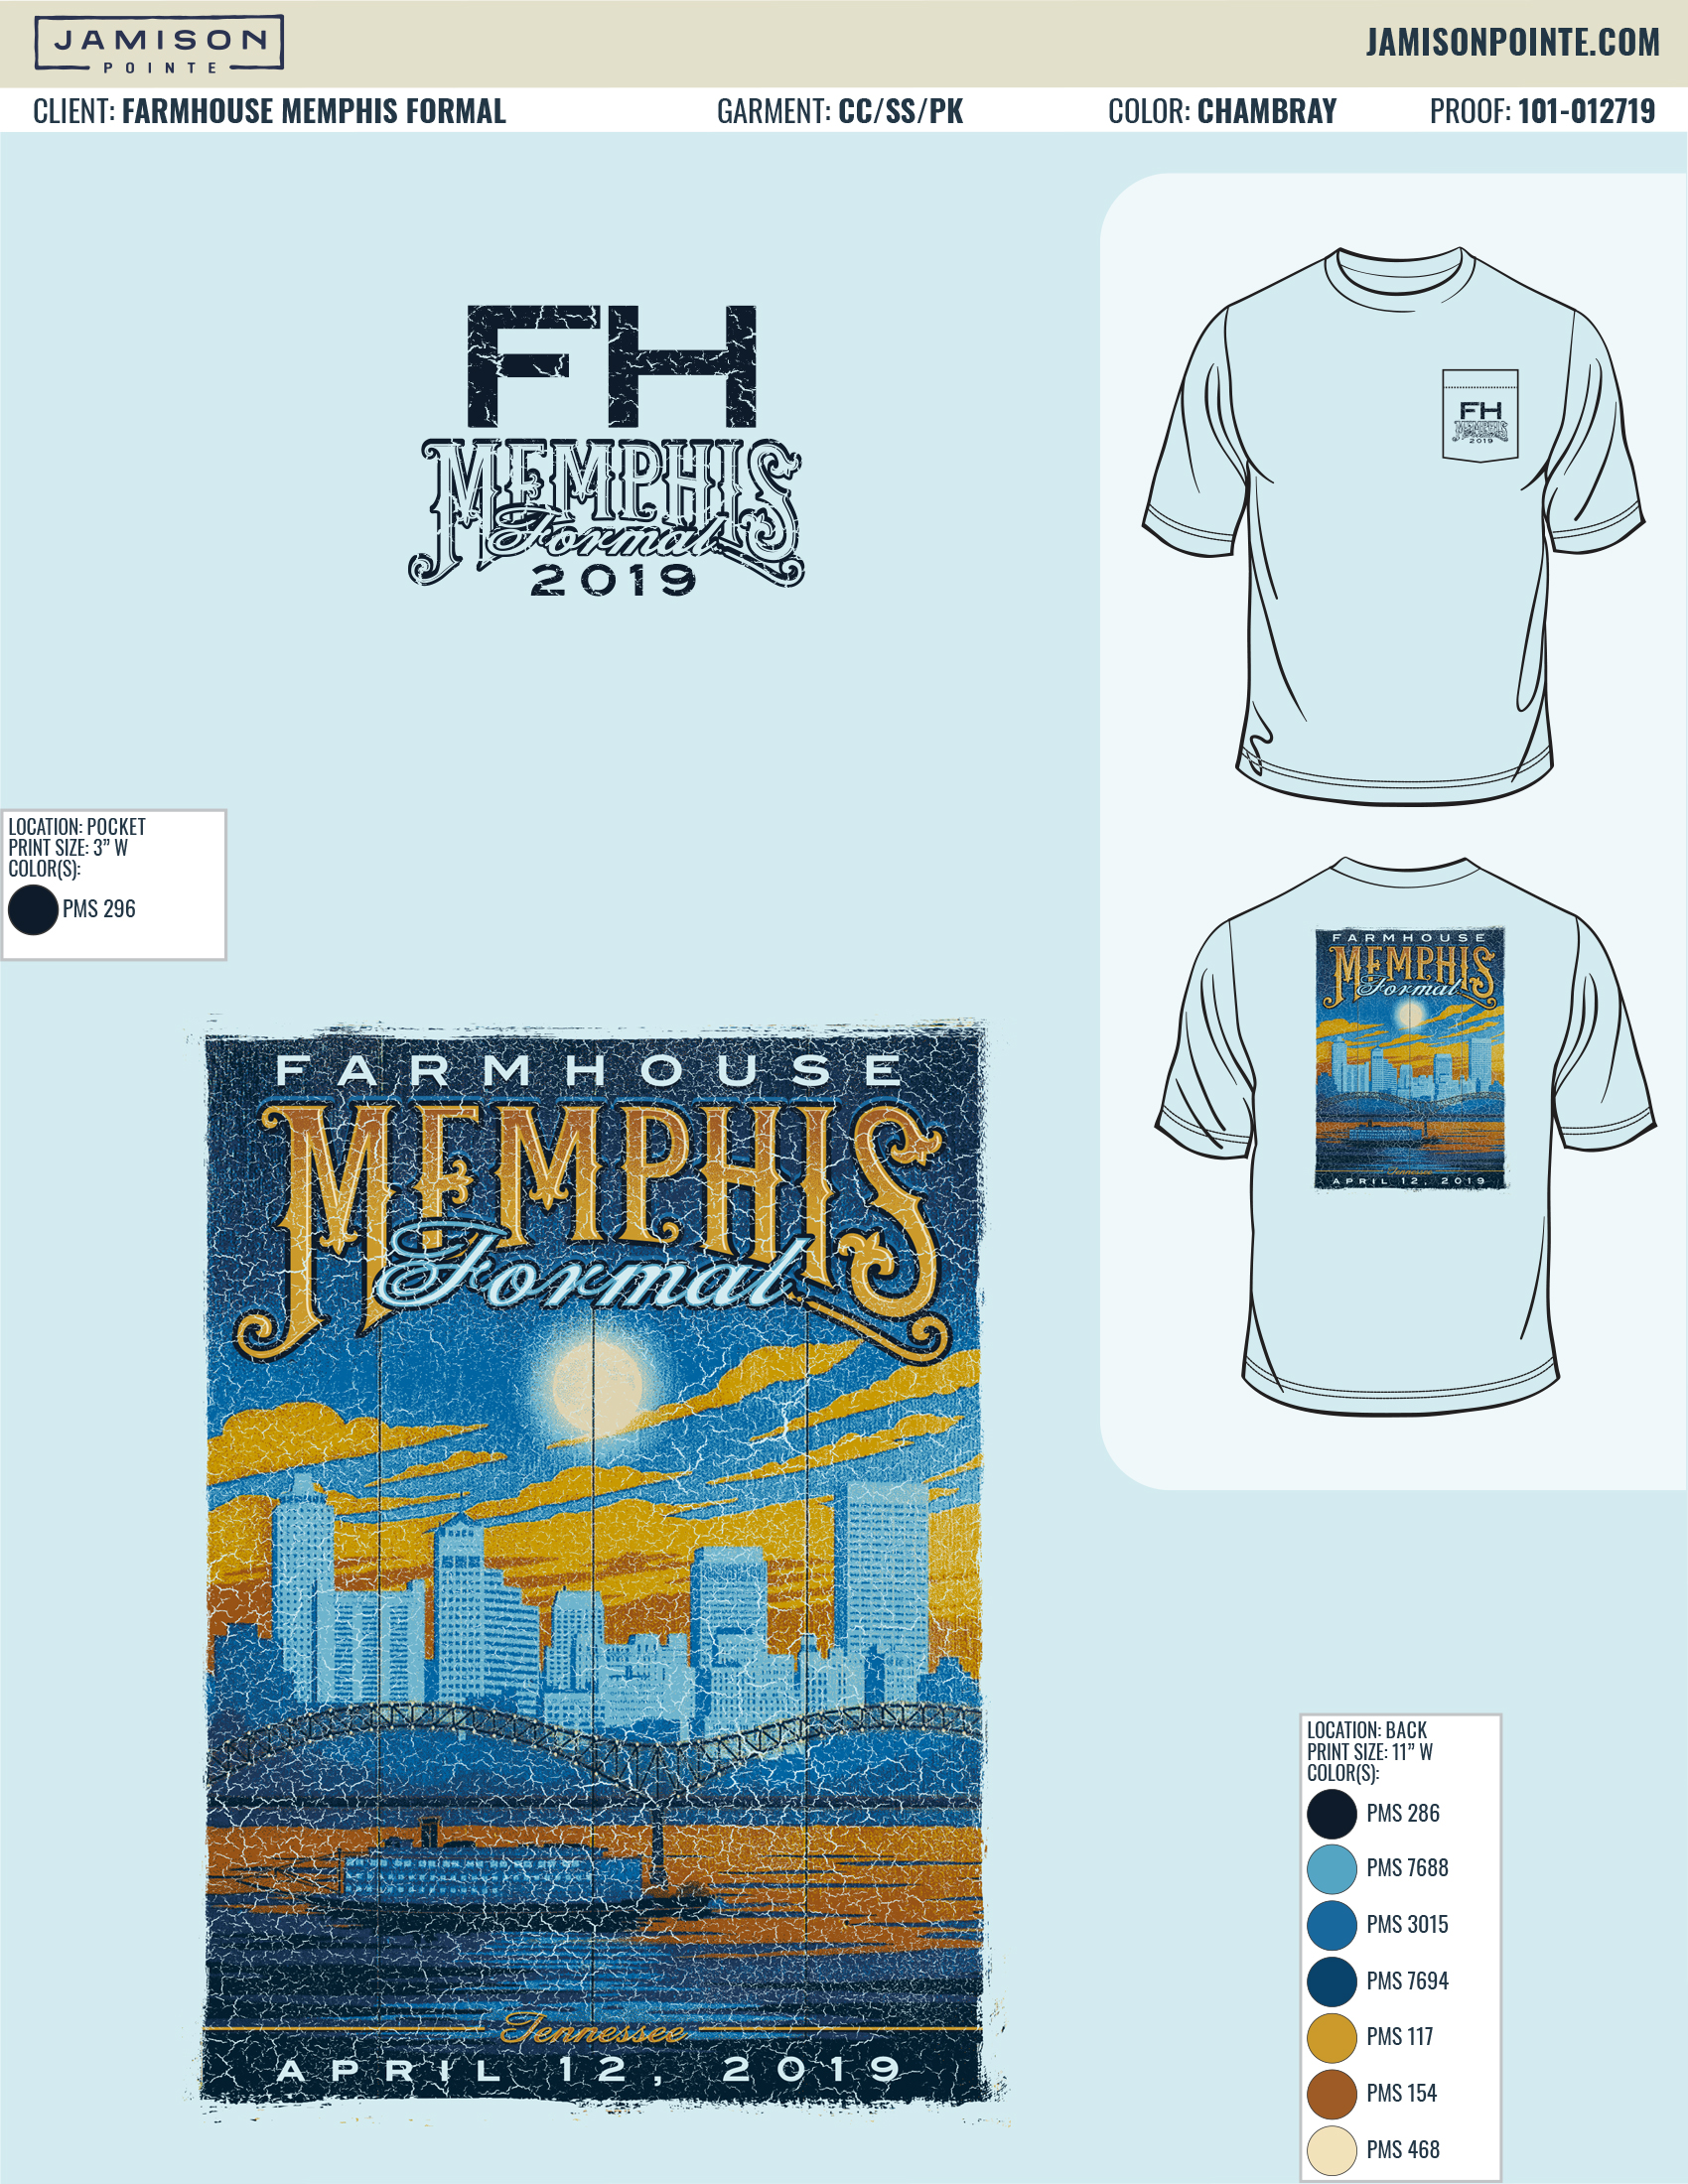 101-012719 Farmhouse Memphis Formal.jpg